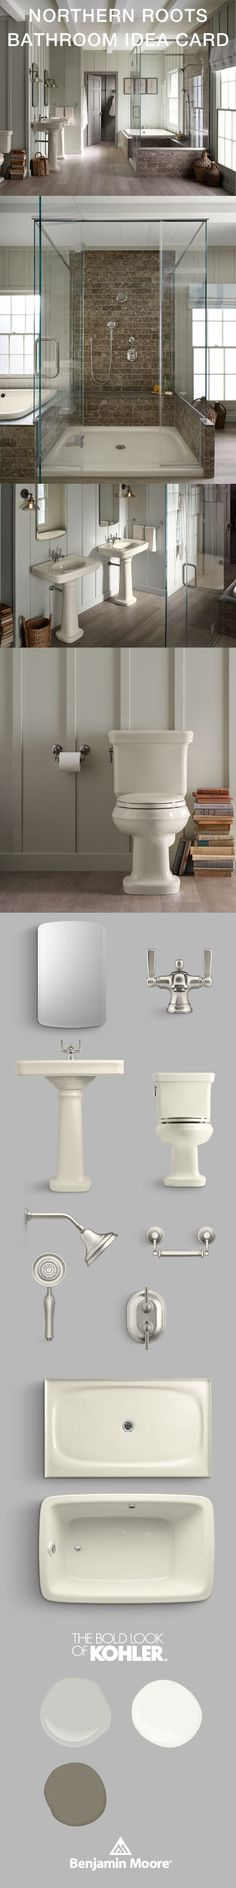 Bancroft suite, biscuit, off white bathroom, cool neutral bathroom, rustic bathroom, get the look #CollaborationinFullColor